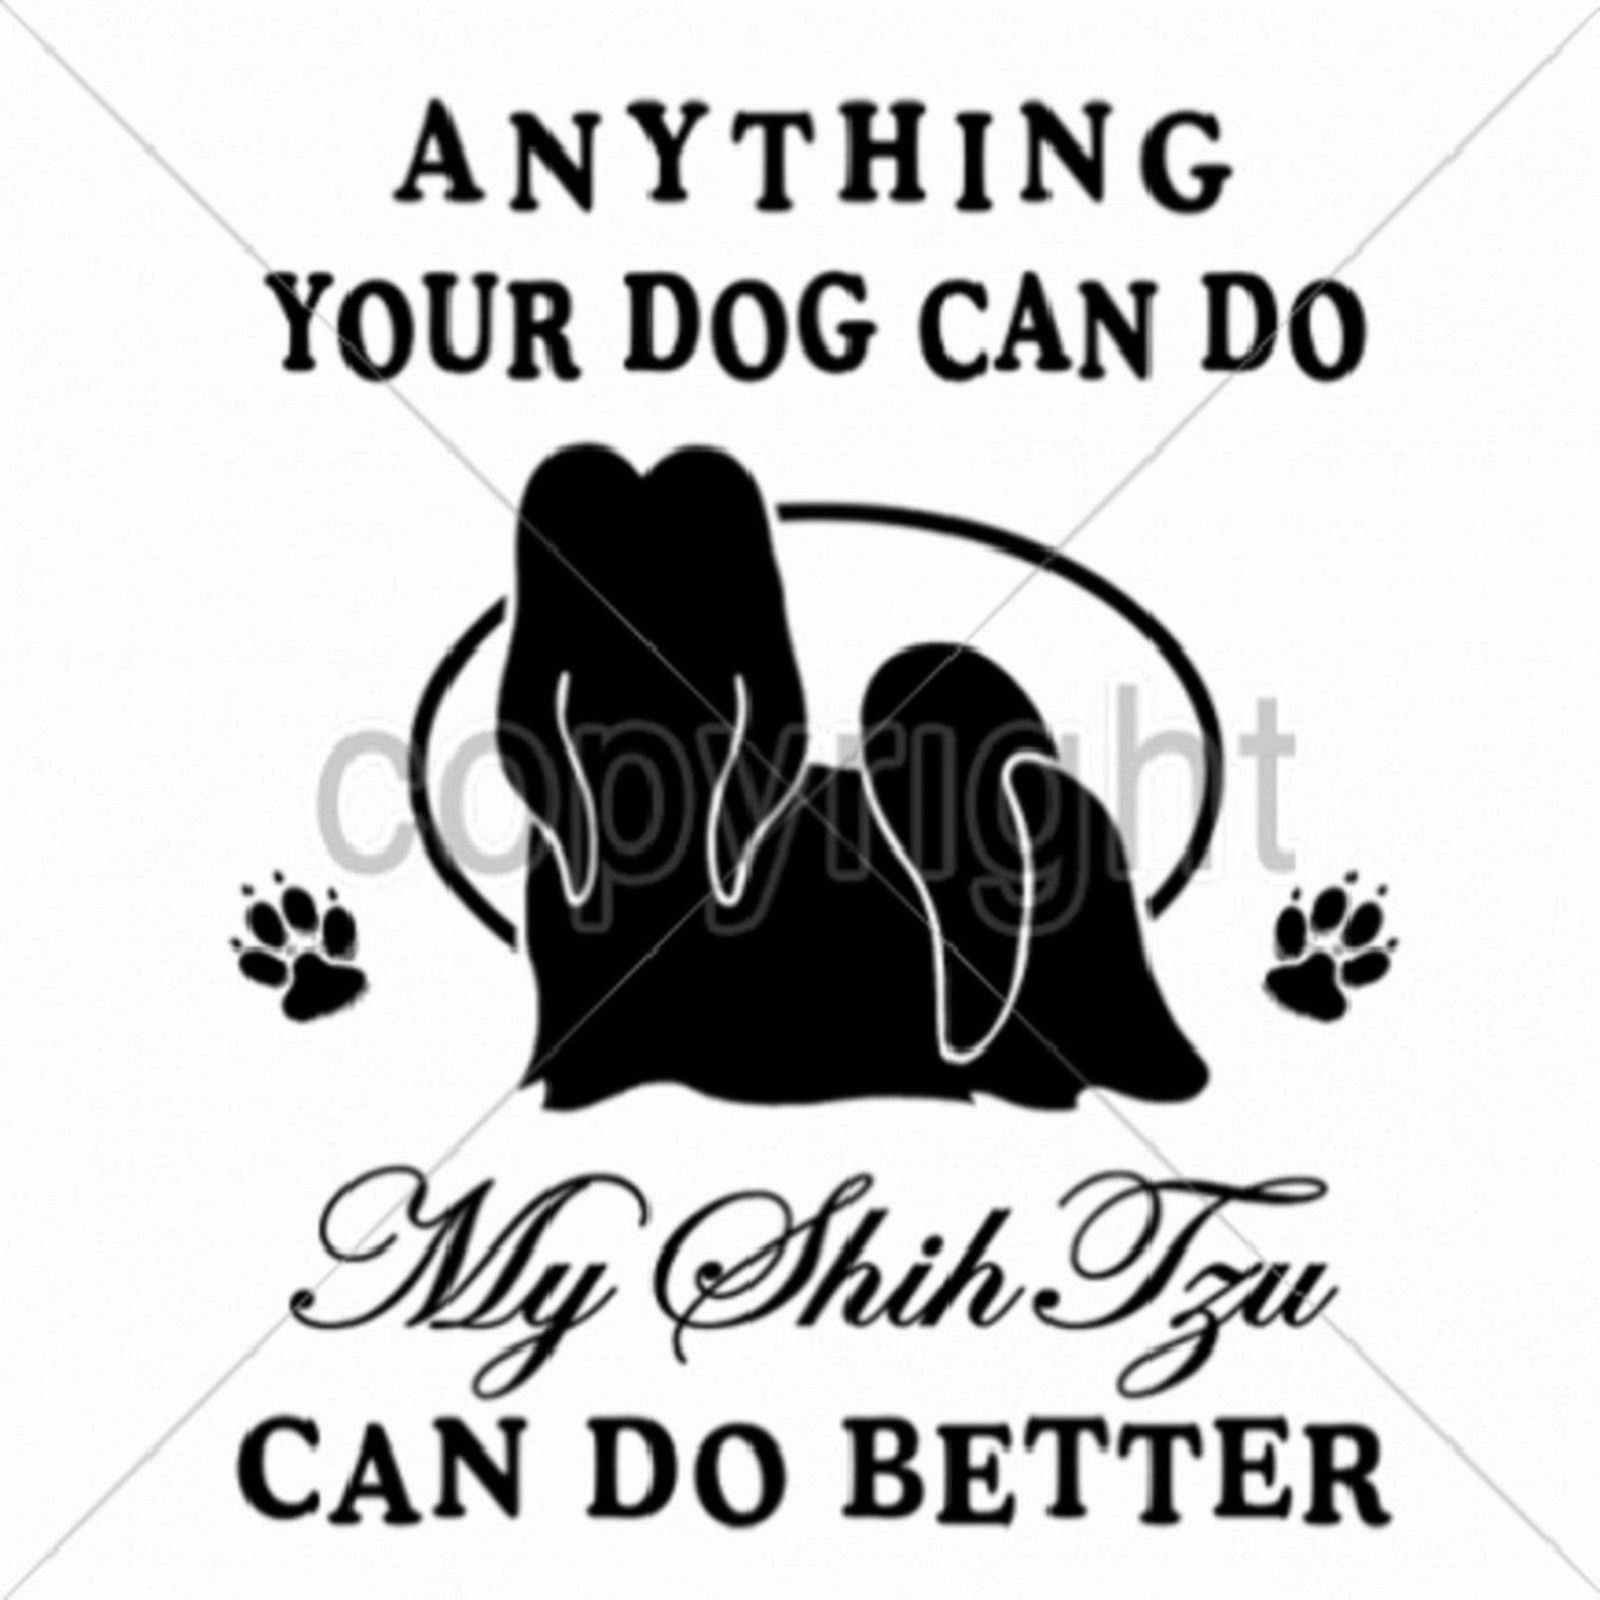 My Shih Tzu Anything Your Dog Can Do Pick Size T Shirt